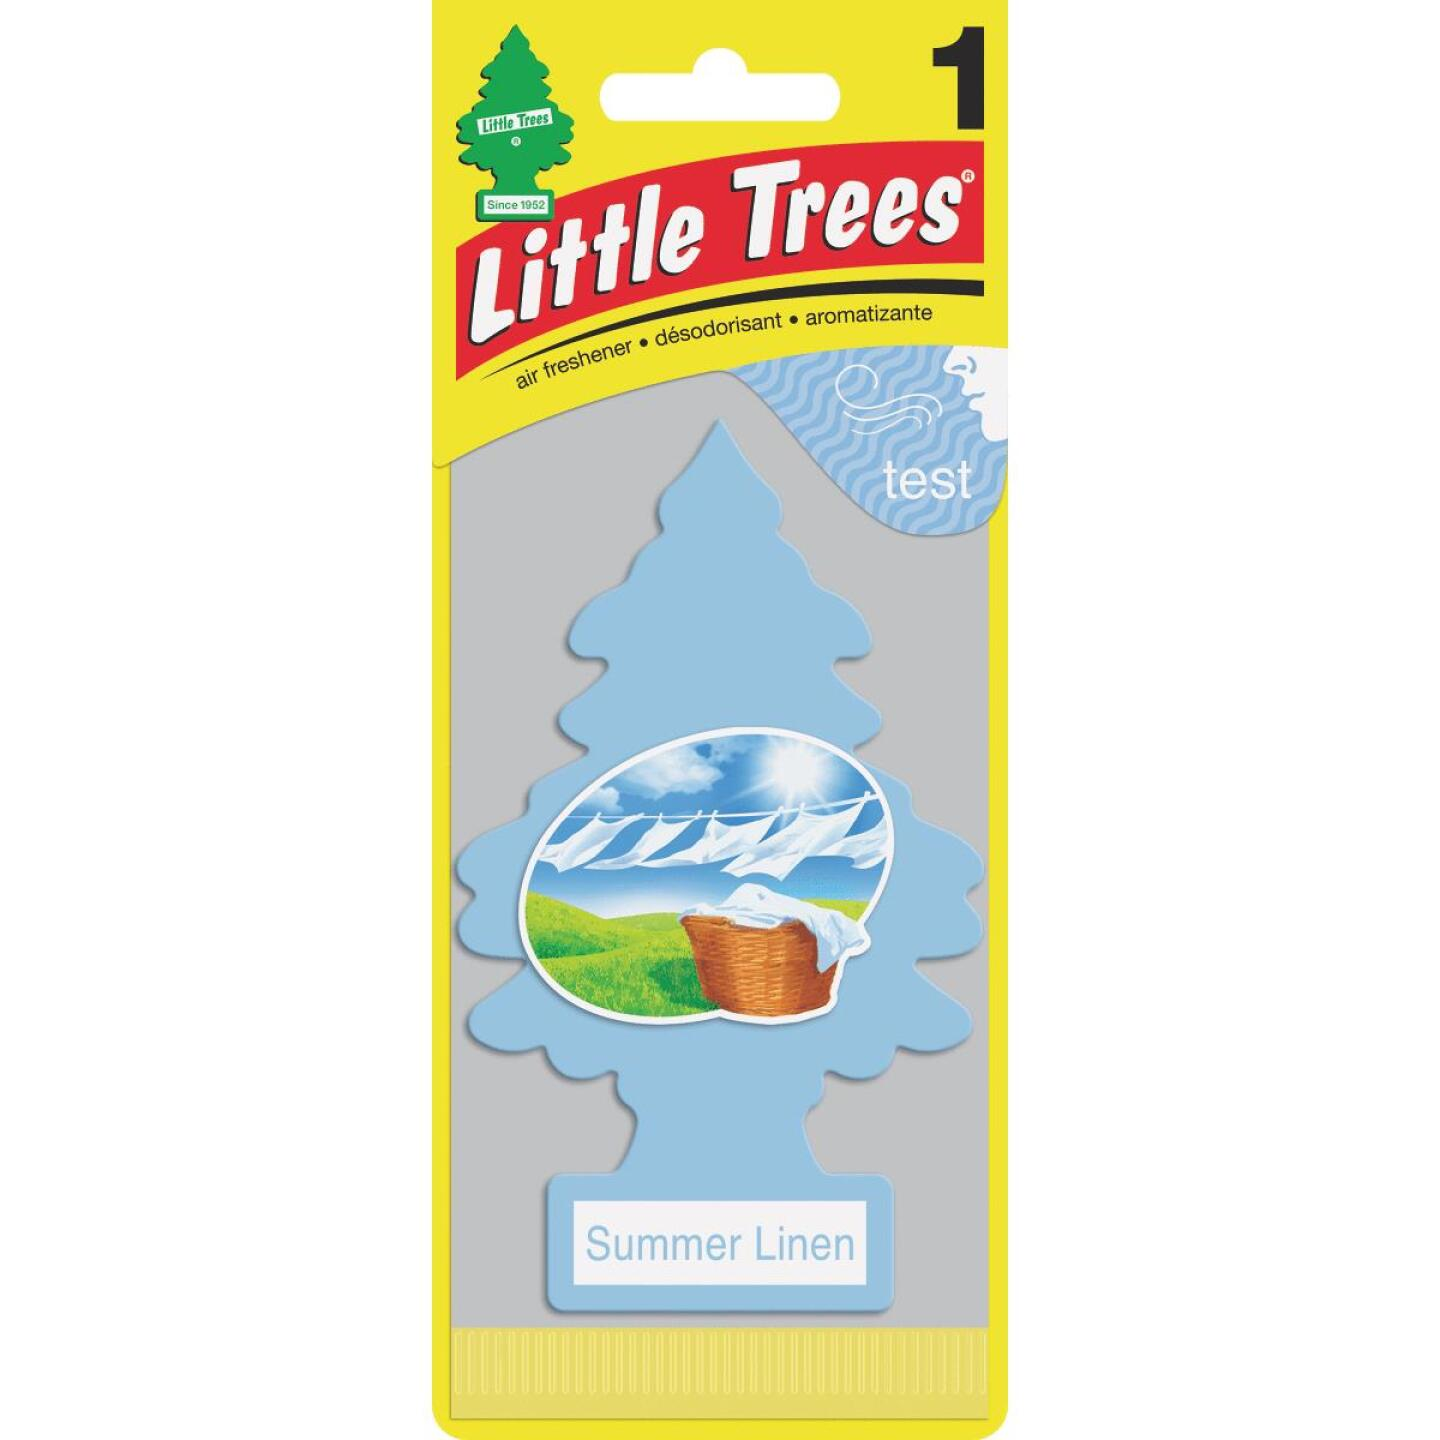 Little Trees Car Air Freshener, Summer Linen Image 1